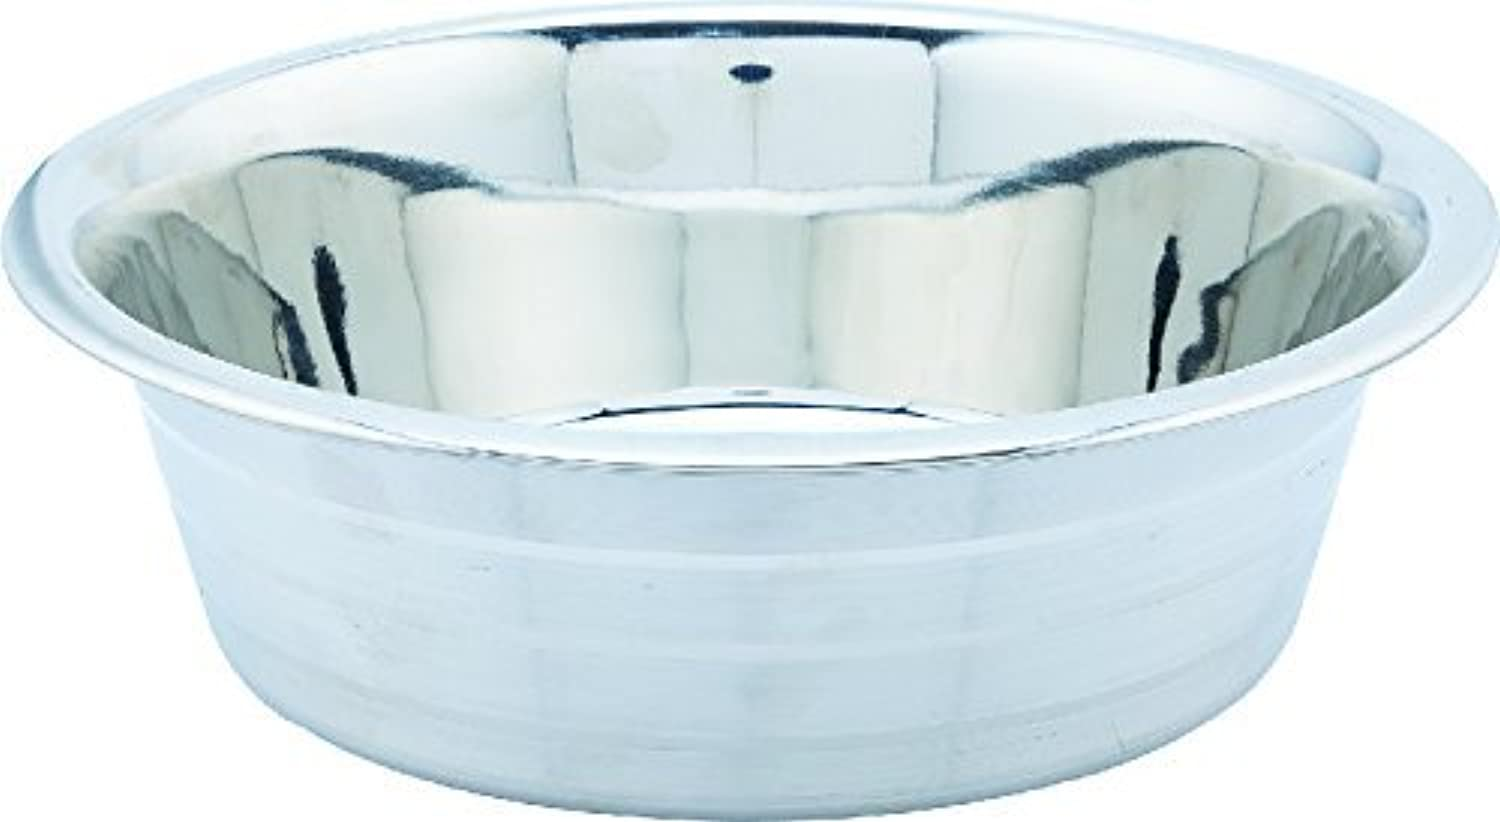 Indipets Silver Touch Collection. Silver Stripe Stainless Steel Dog Bowl. 5 Quarts